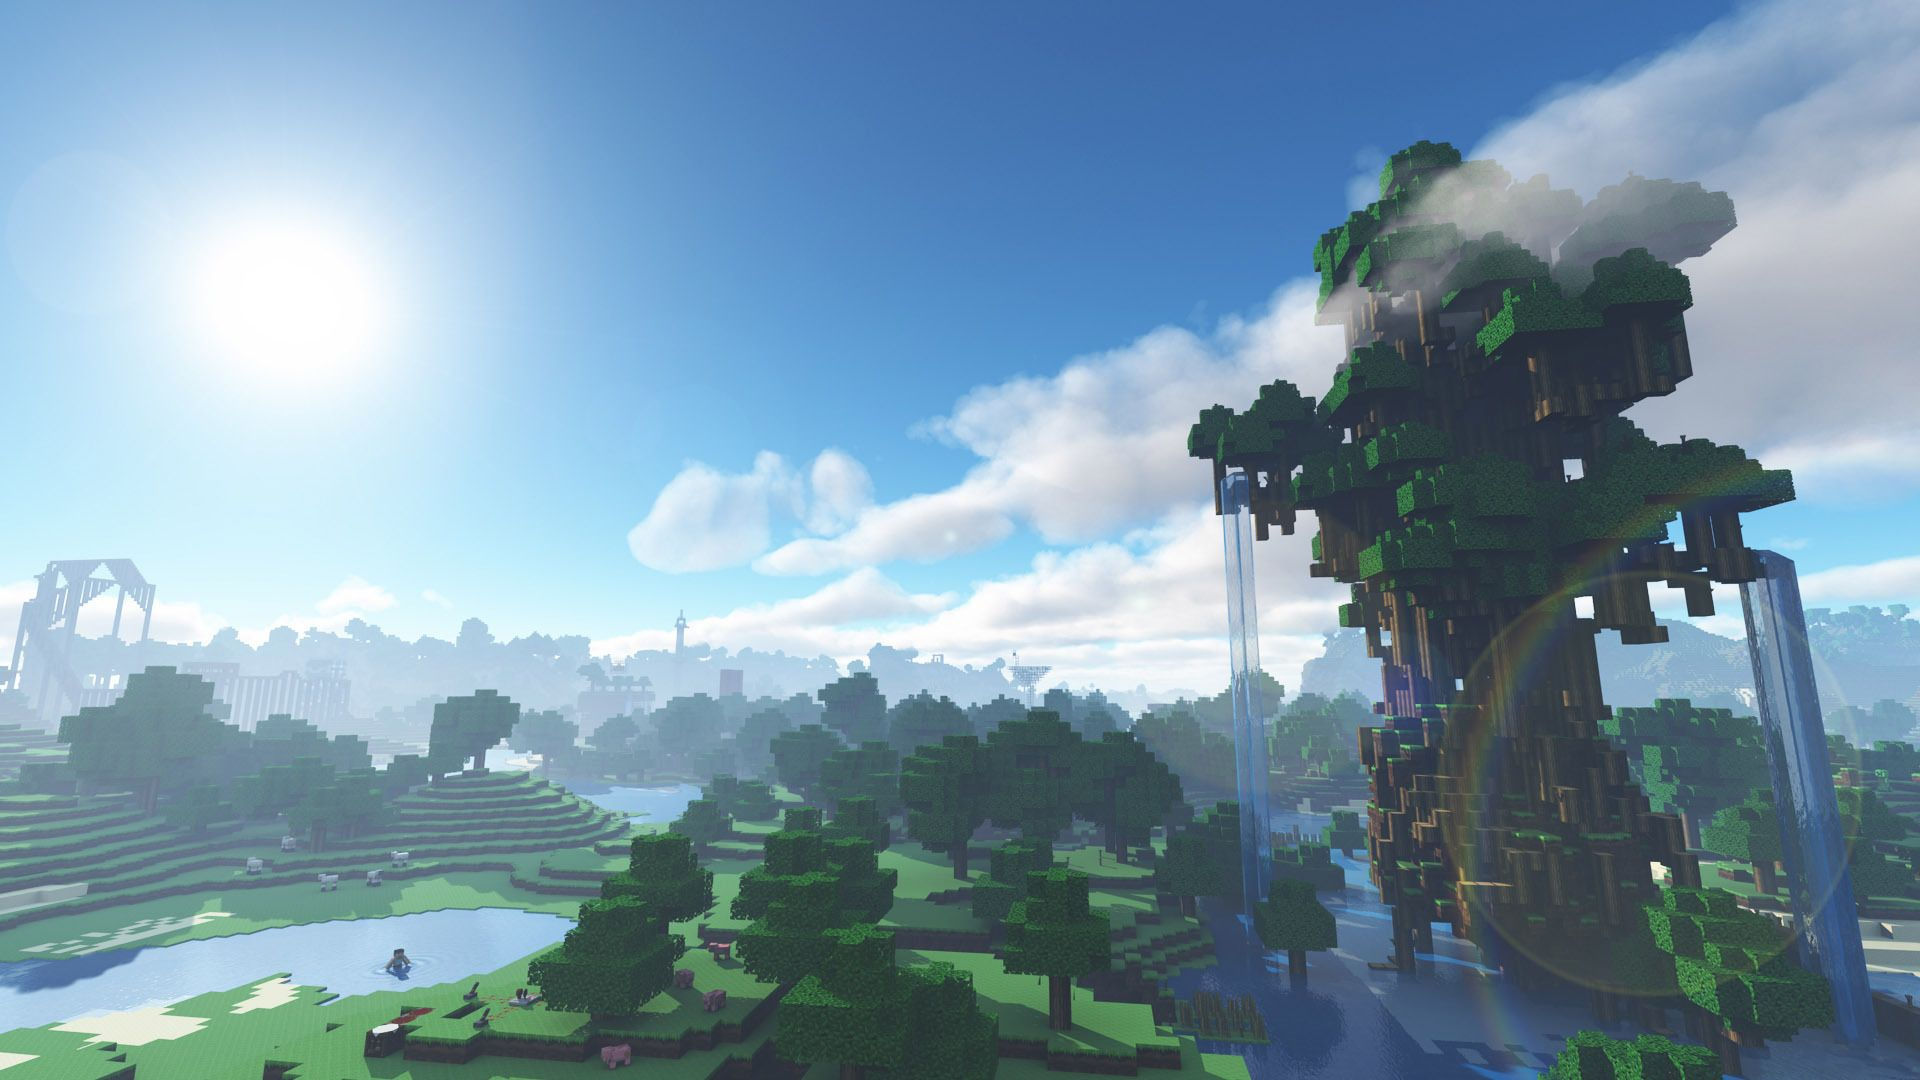 Minecraft Wallpapers Archives Page 26 Of 55 Widewallpaper Info Free Hd Desktop Wallpapers For Wi Minecraft Wallpaper Minecraft Shaders Minecraft Pictures